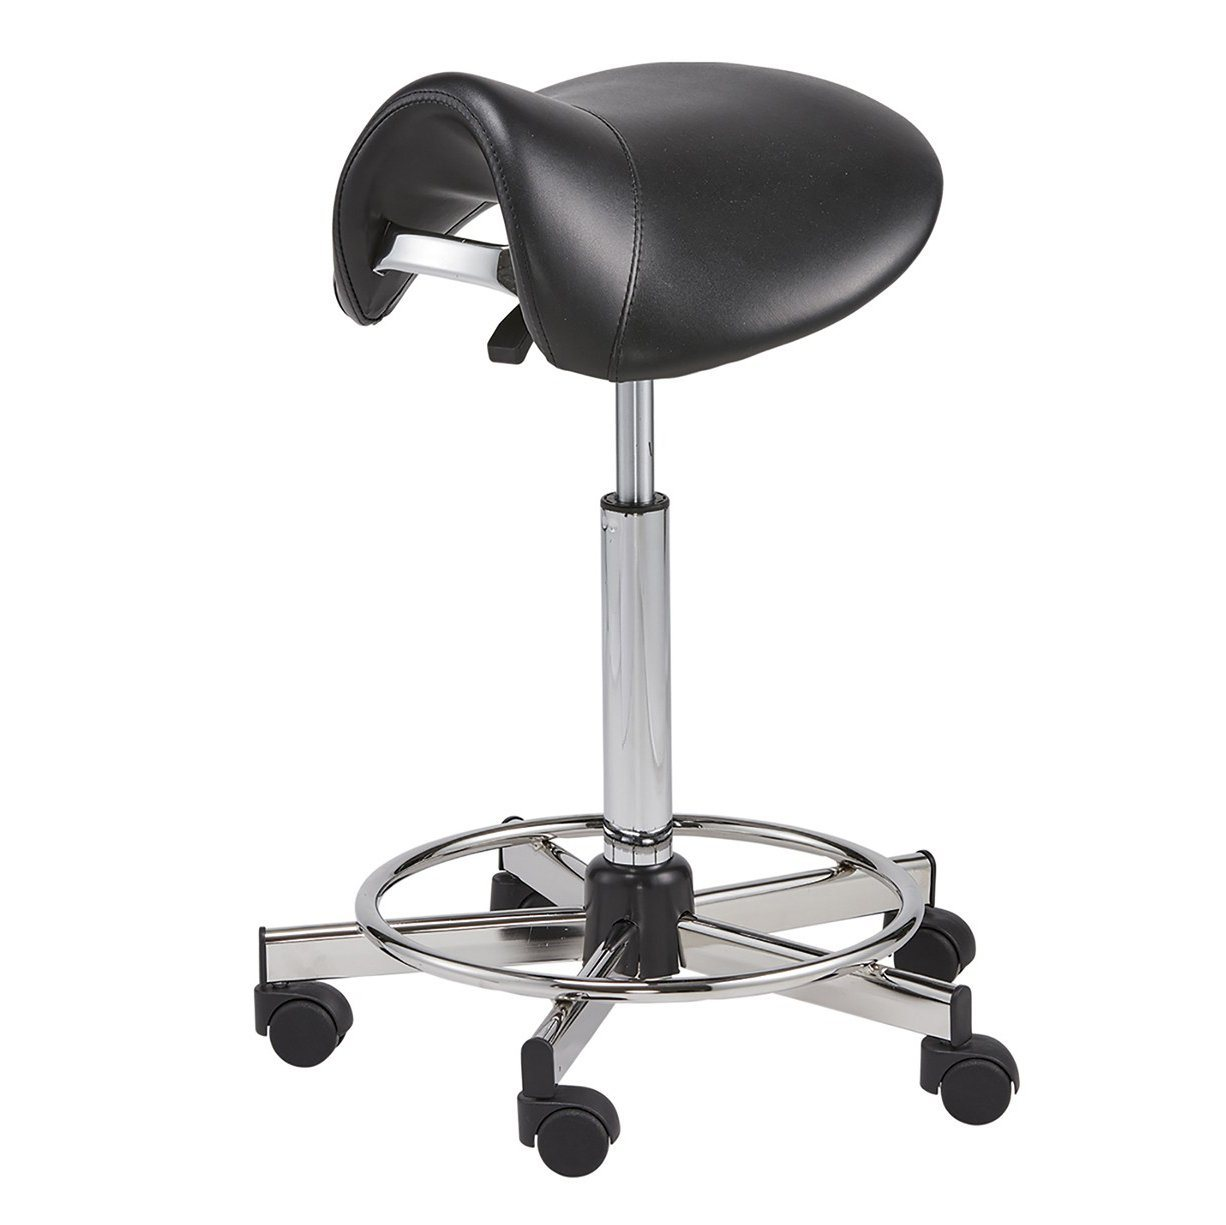 D3033 | Stool - SH Salons